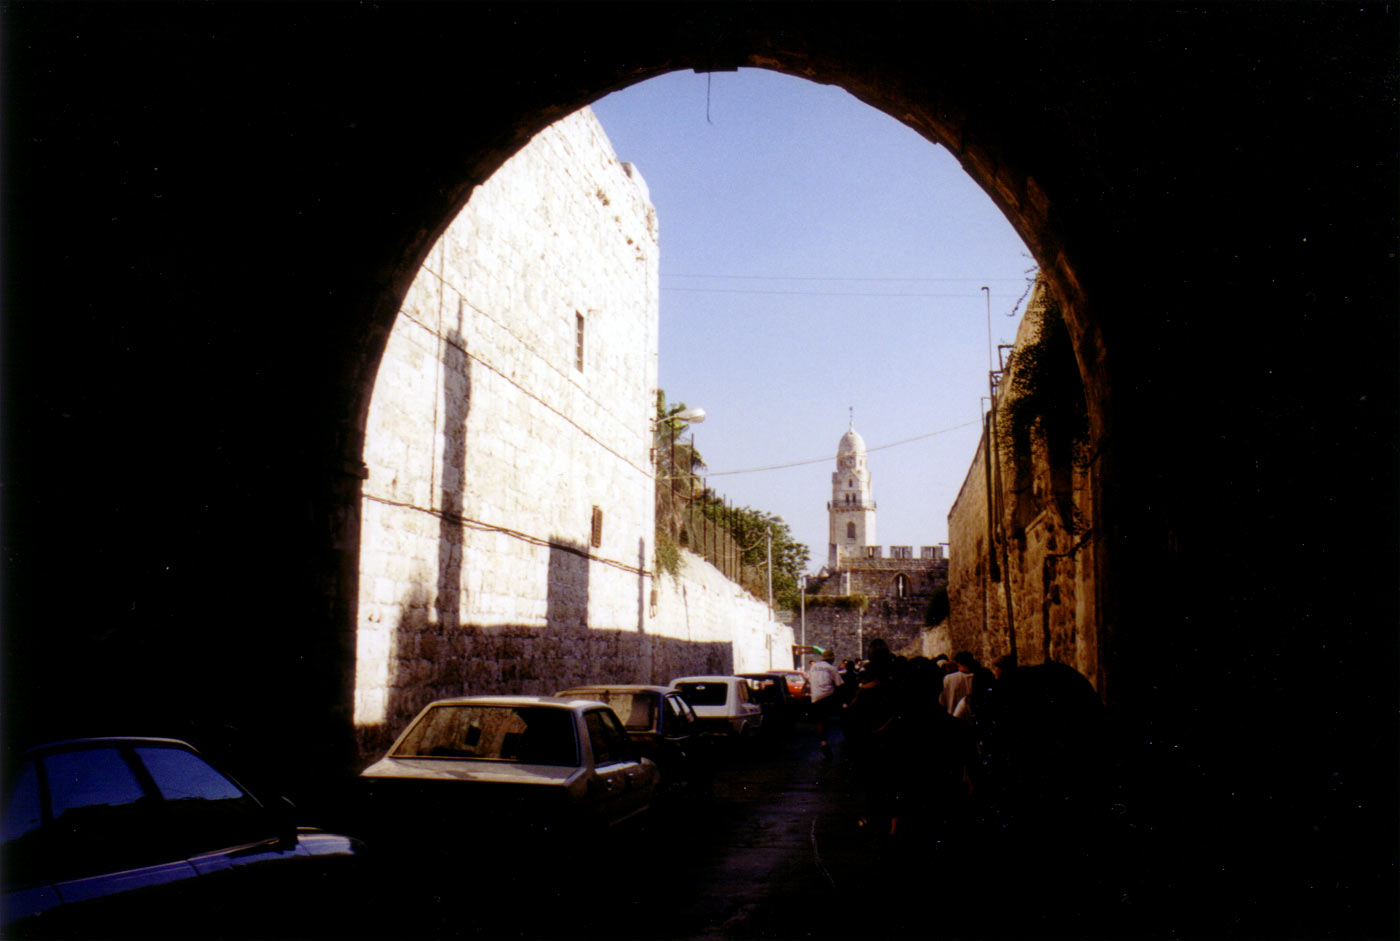 Entering Jerusalem through the Damascus Gate, I believe.